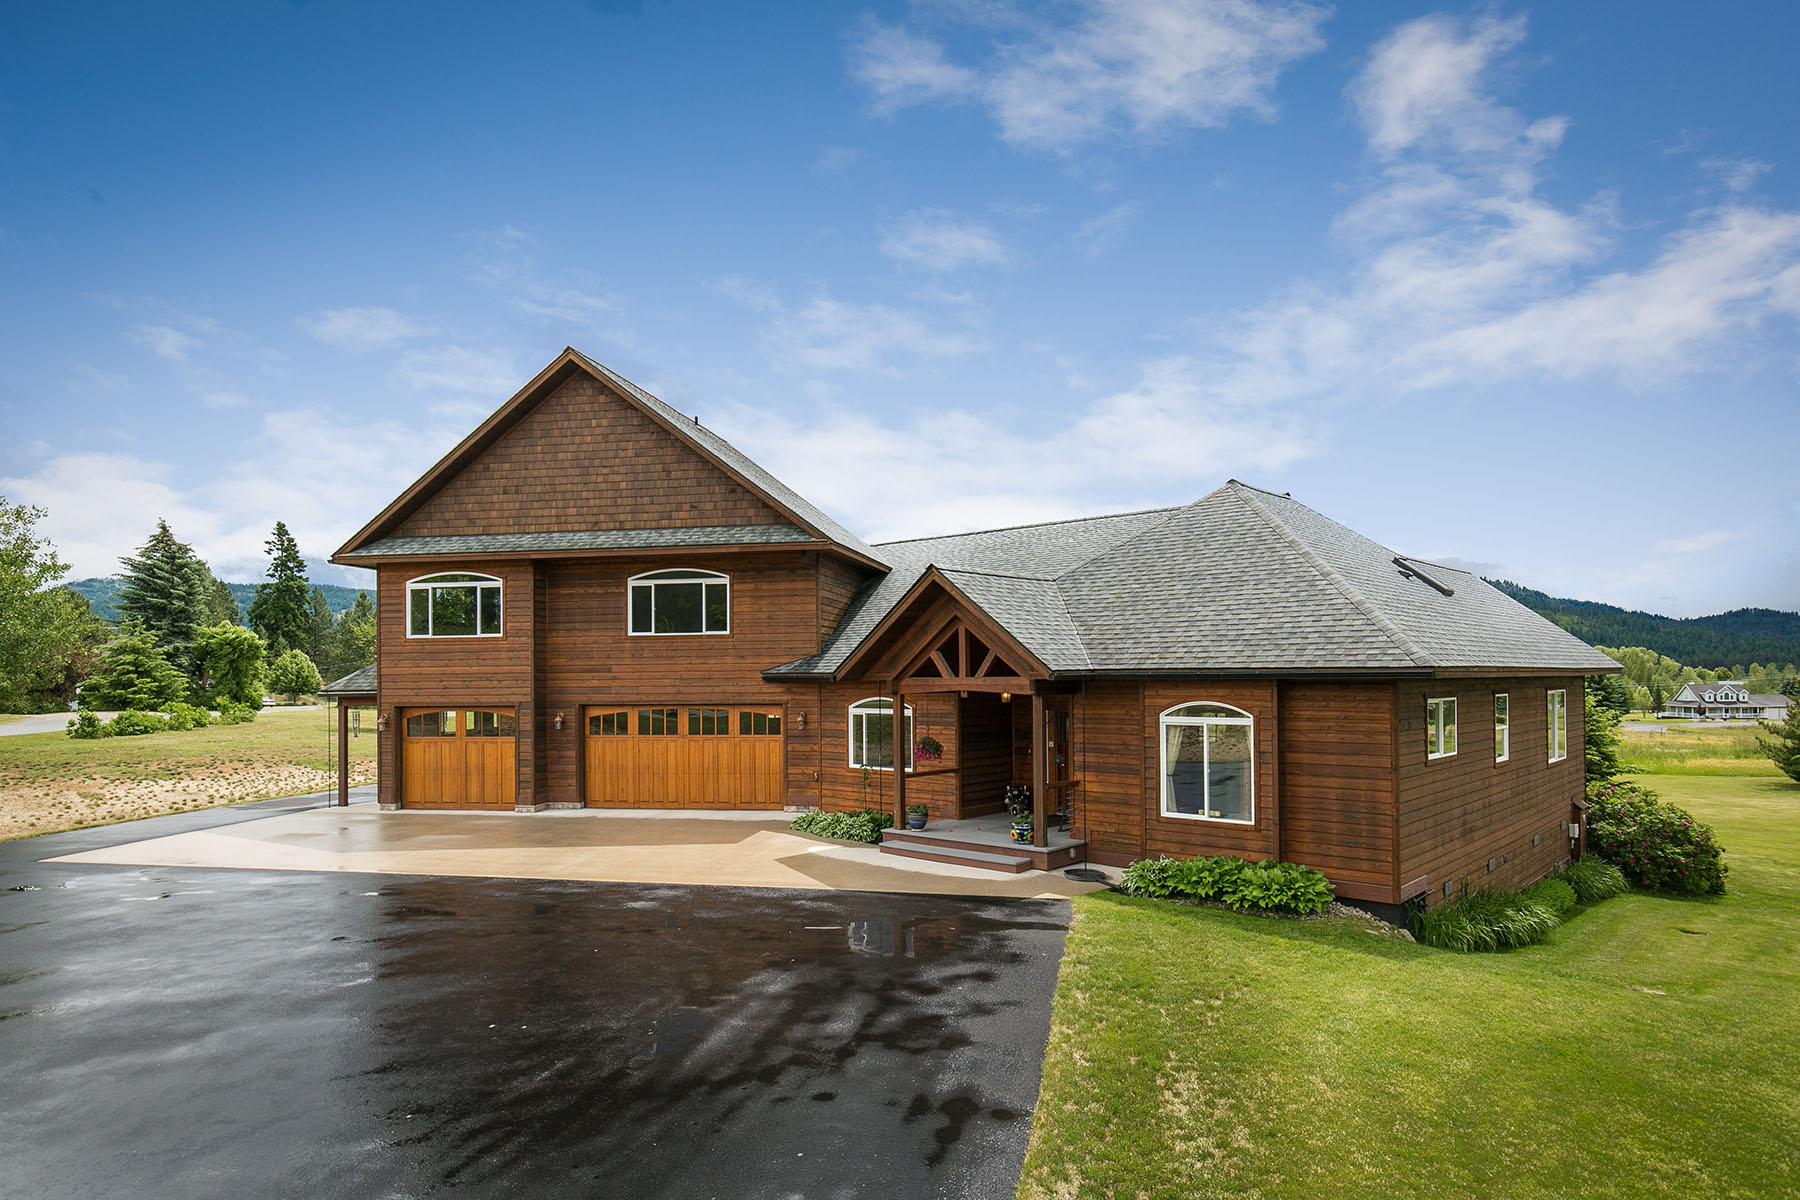 Casa Unifamiliar por un Venta en Comfortable Elegance on 3.3 Acres 71 River Run Dr Laclede, Idaho, 83841 Estados Unidos